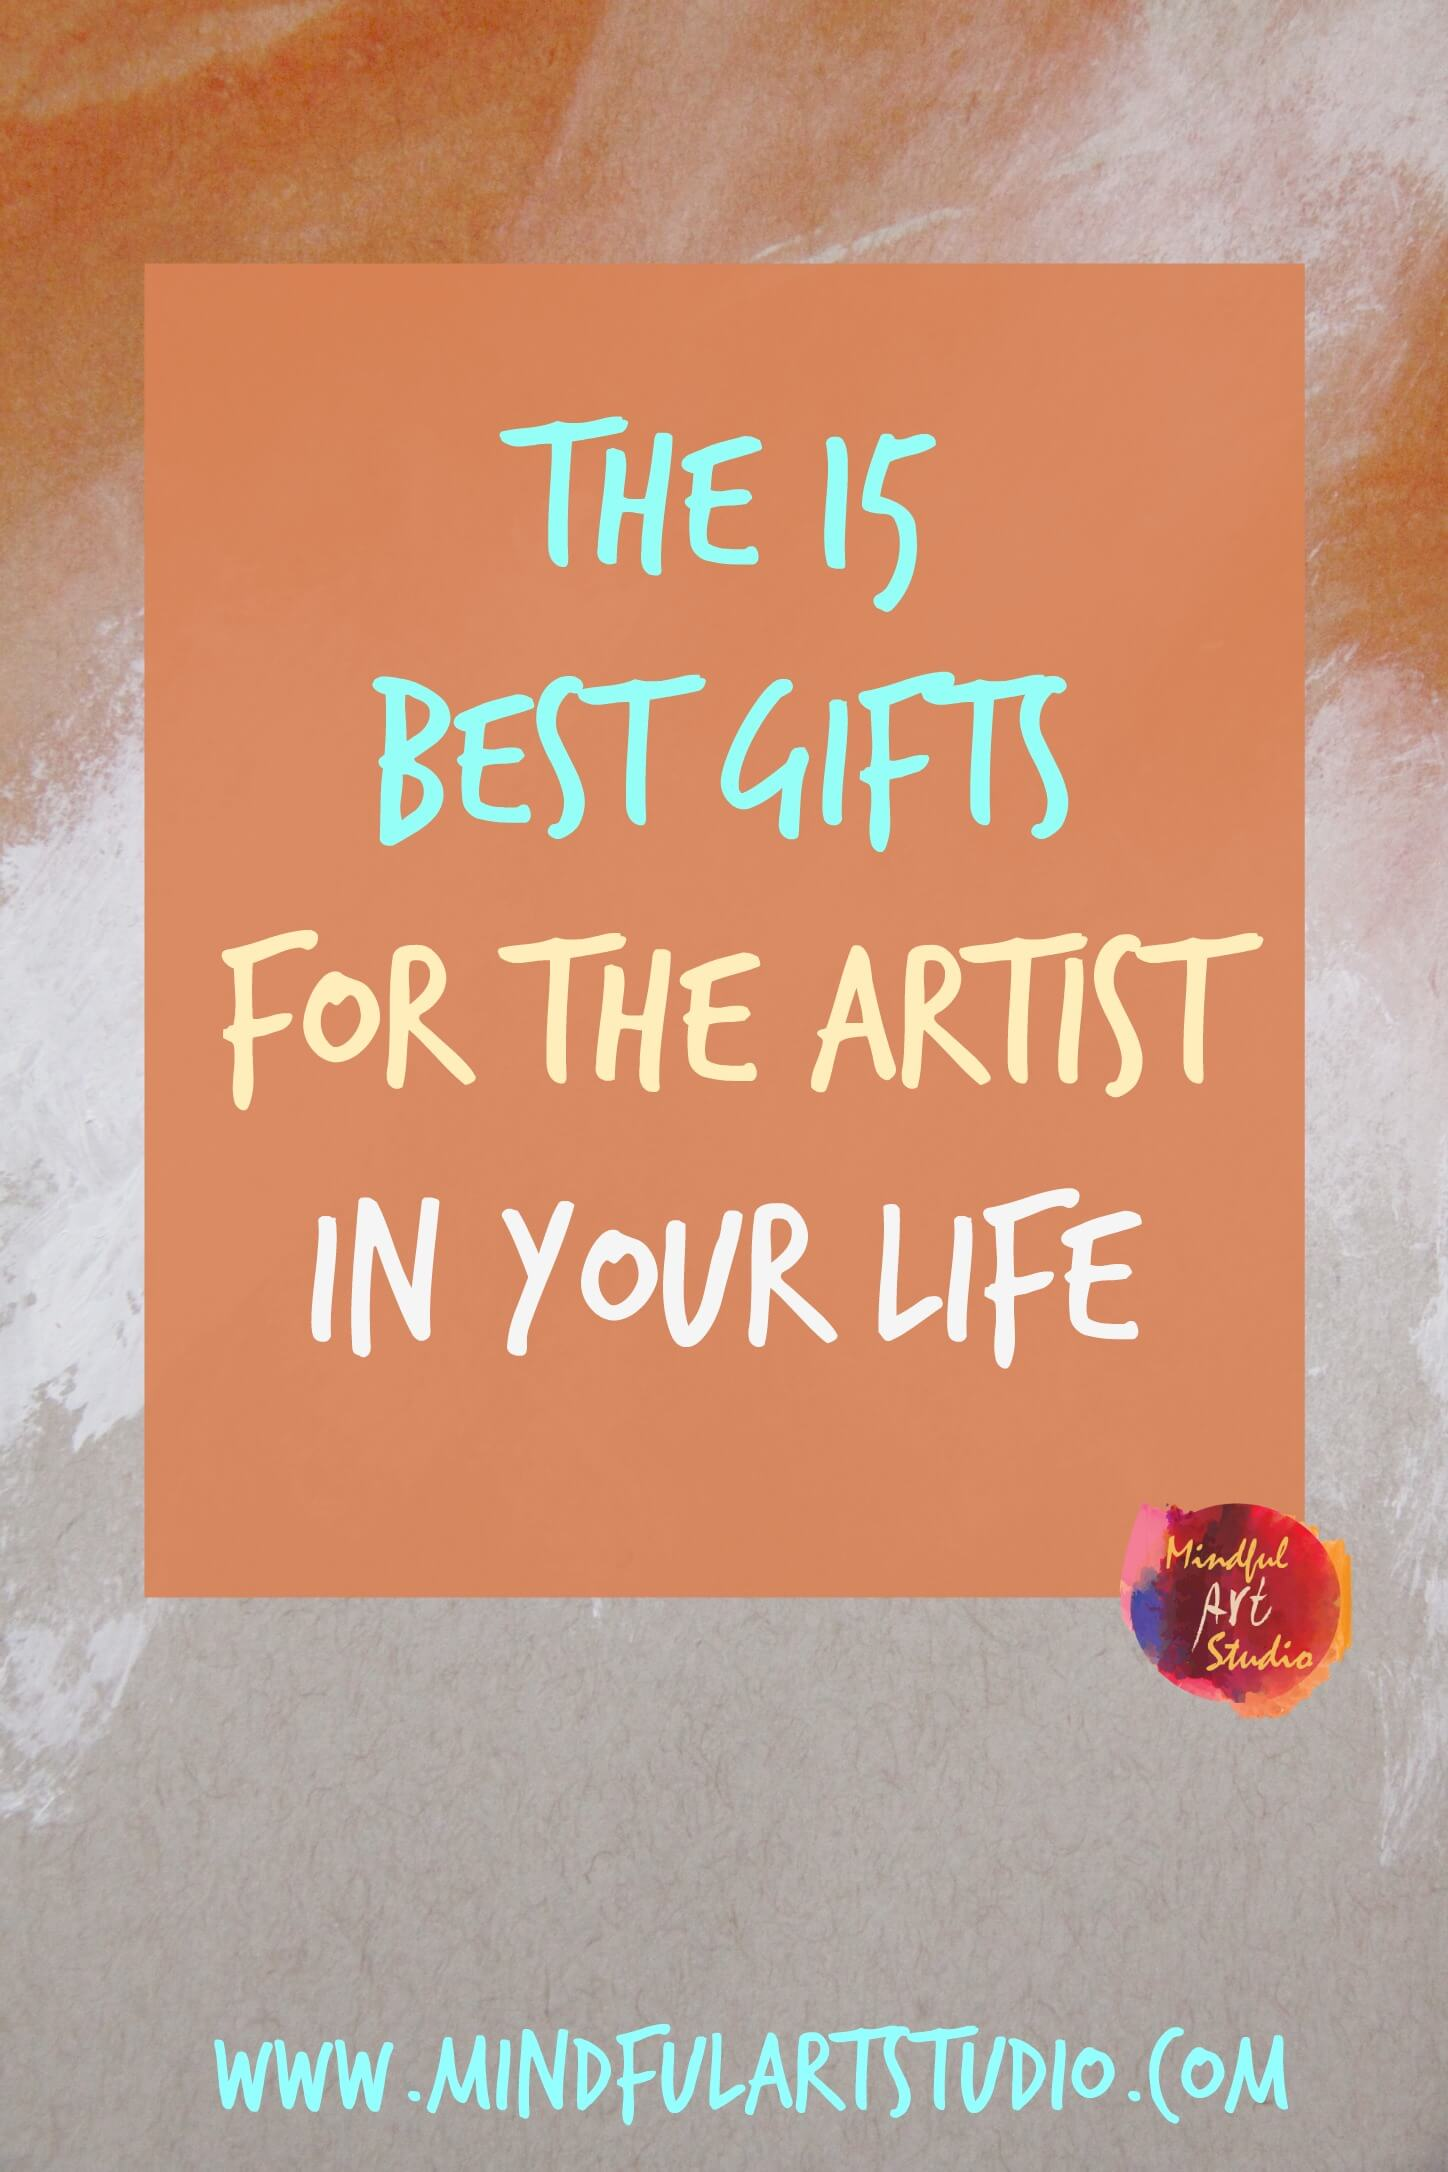 Best Gift Ideas For 13 Year Old Girls: The 15 Best Gifts For The Artist In Your Life